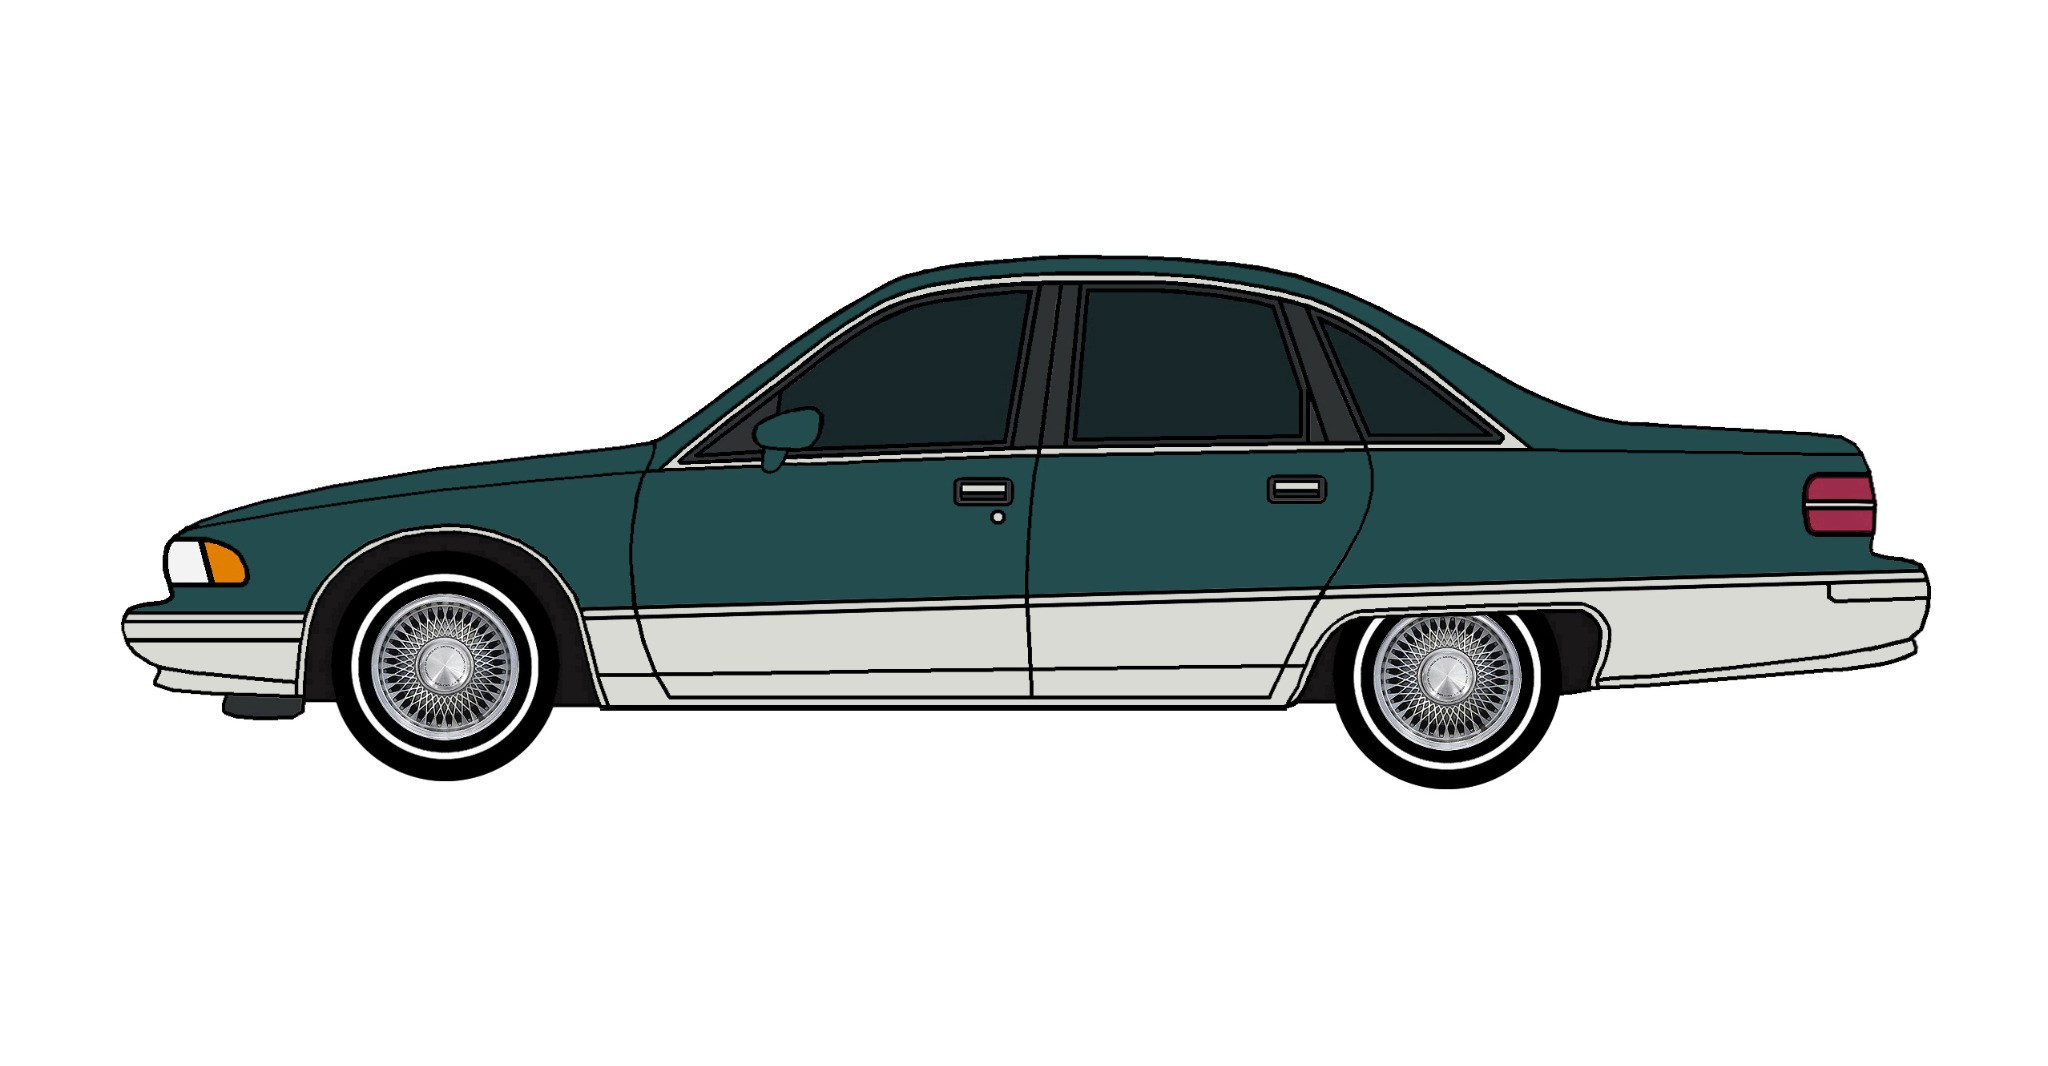 1991 Chevy Caprice TEAL & GREY